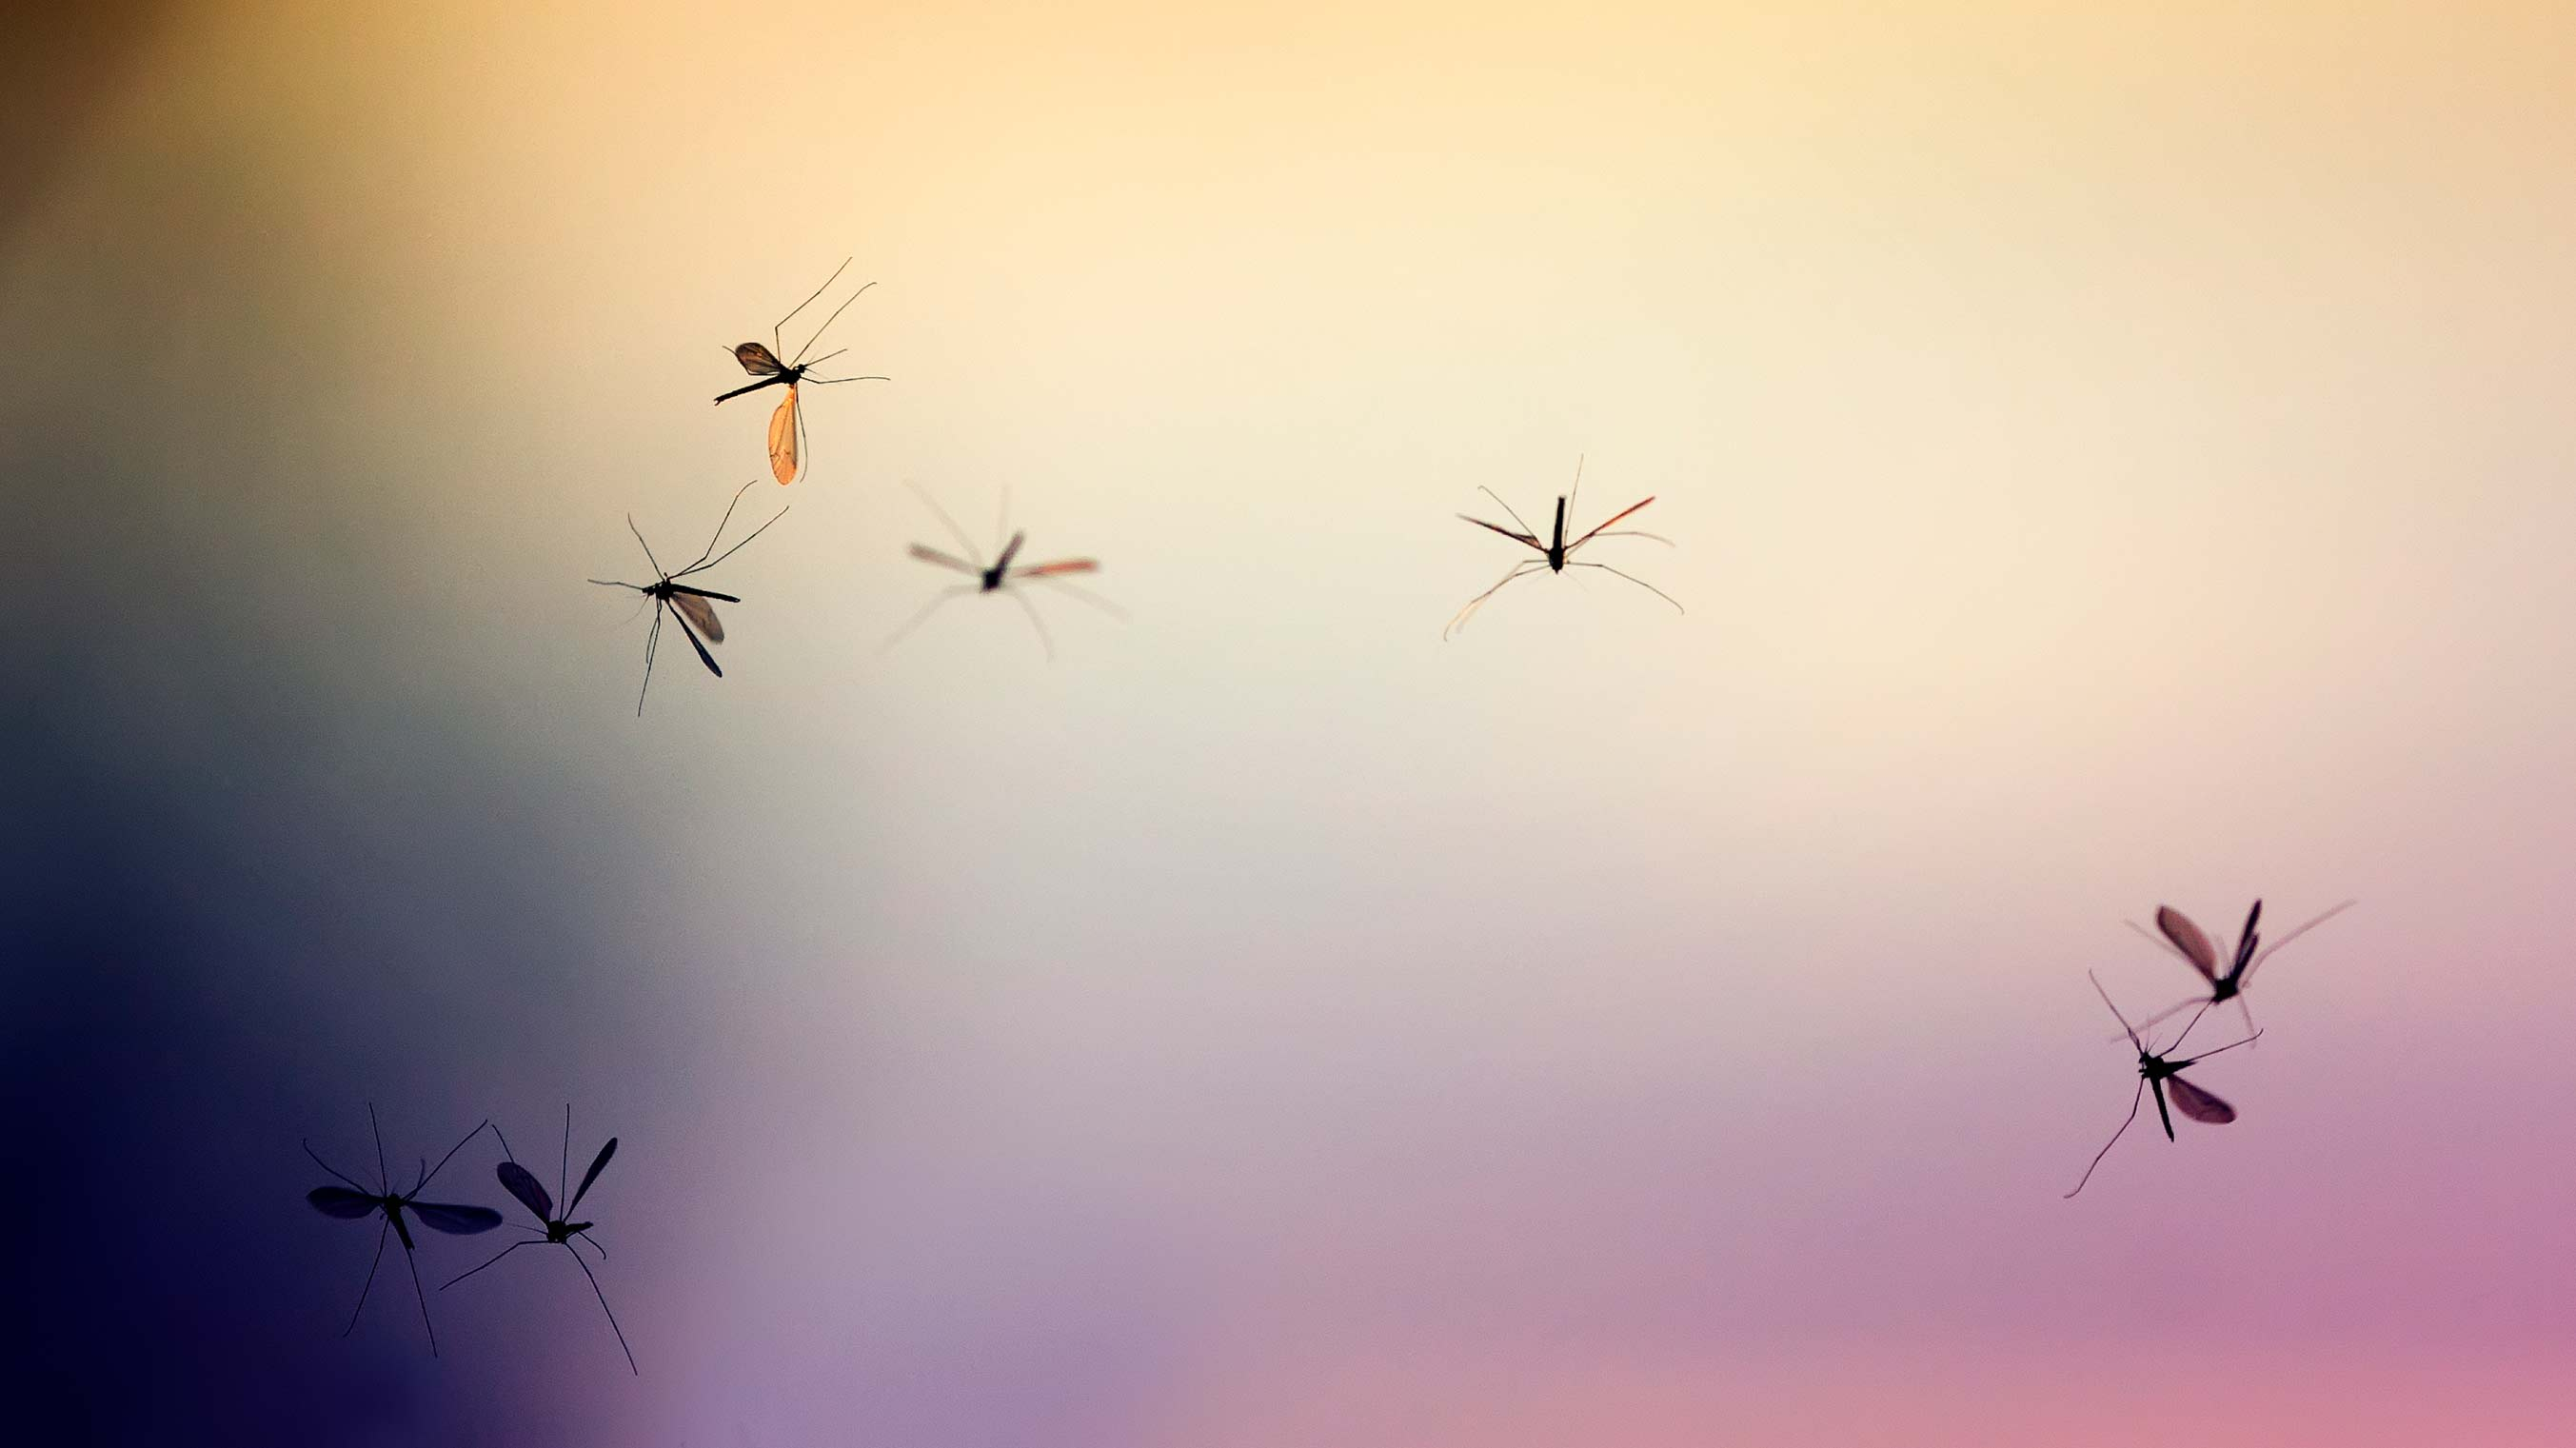 An image of several flying mosquitoes, potential vectors of West Nile virus.